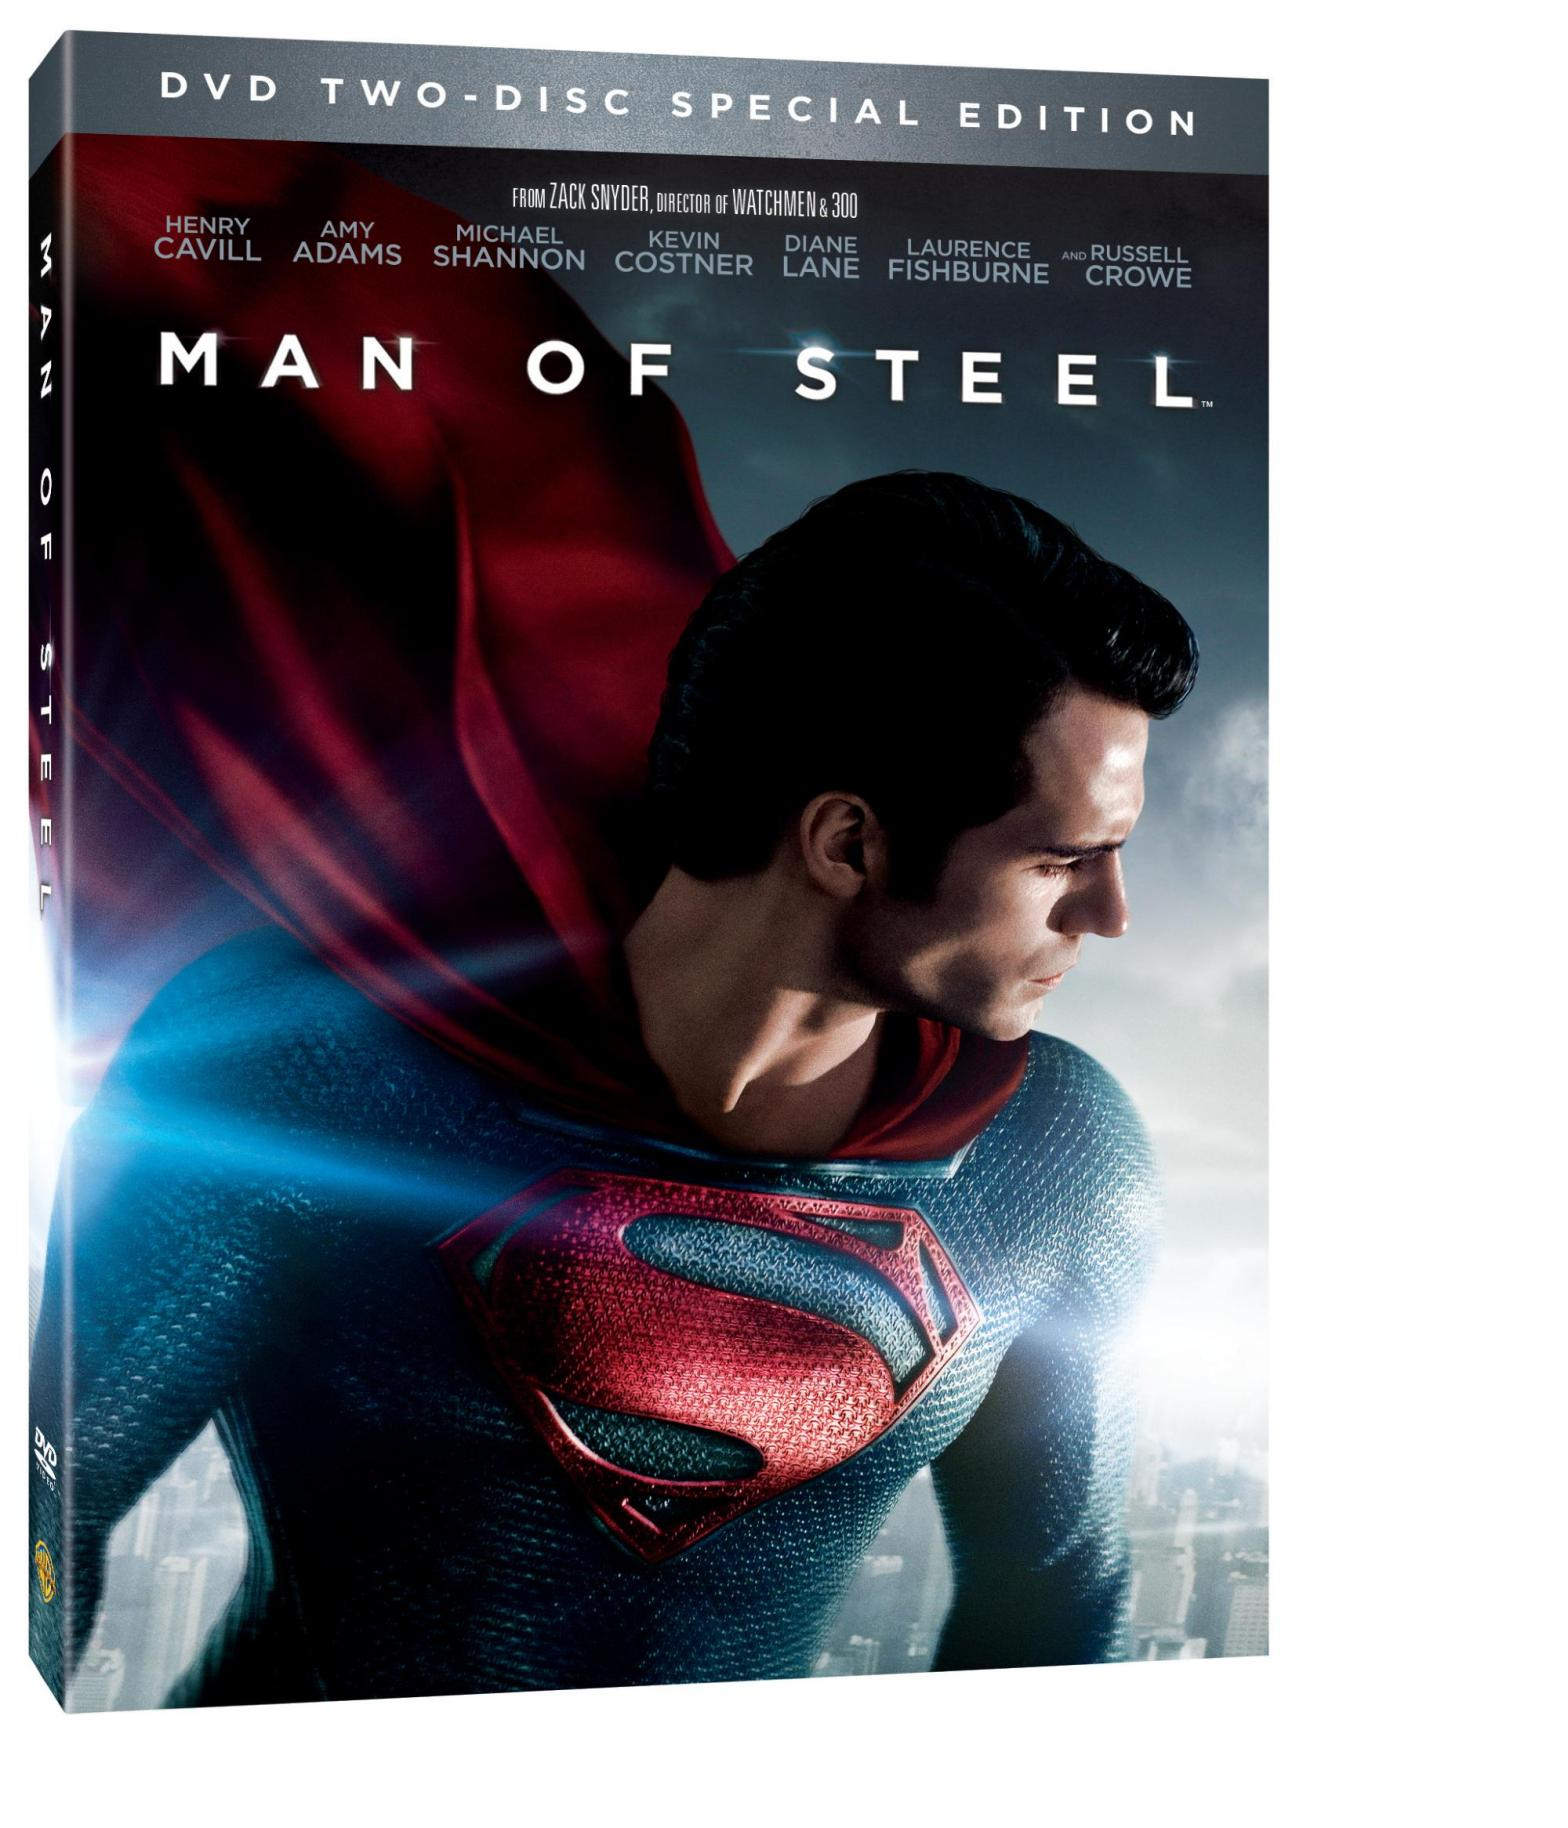 Man of Steel DVD Review